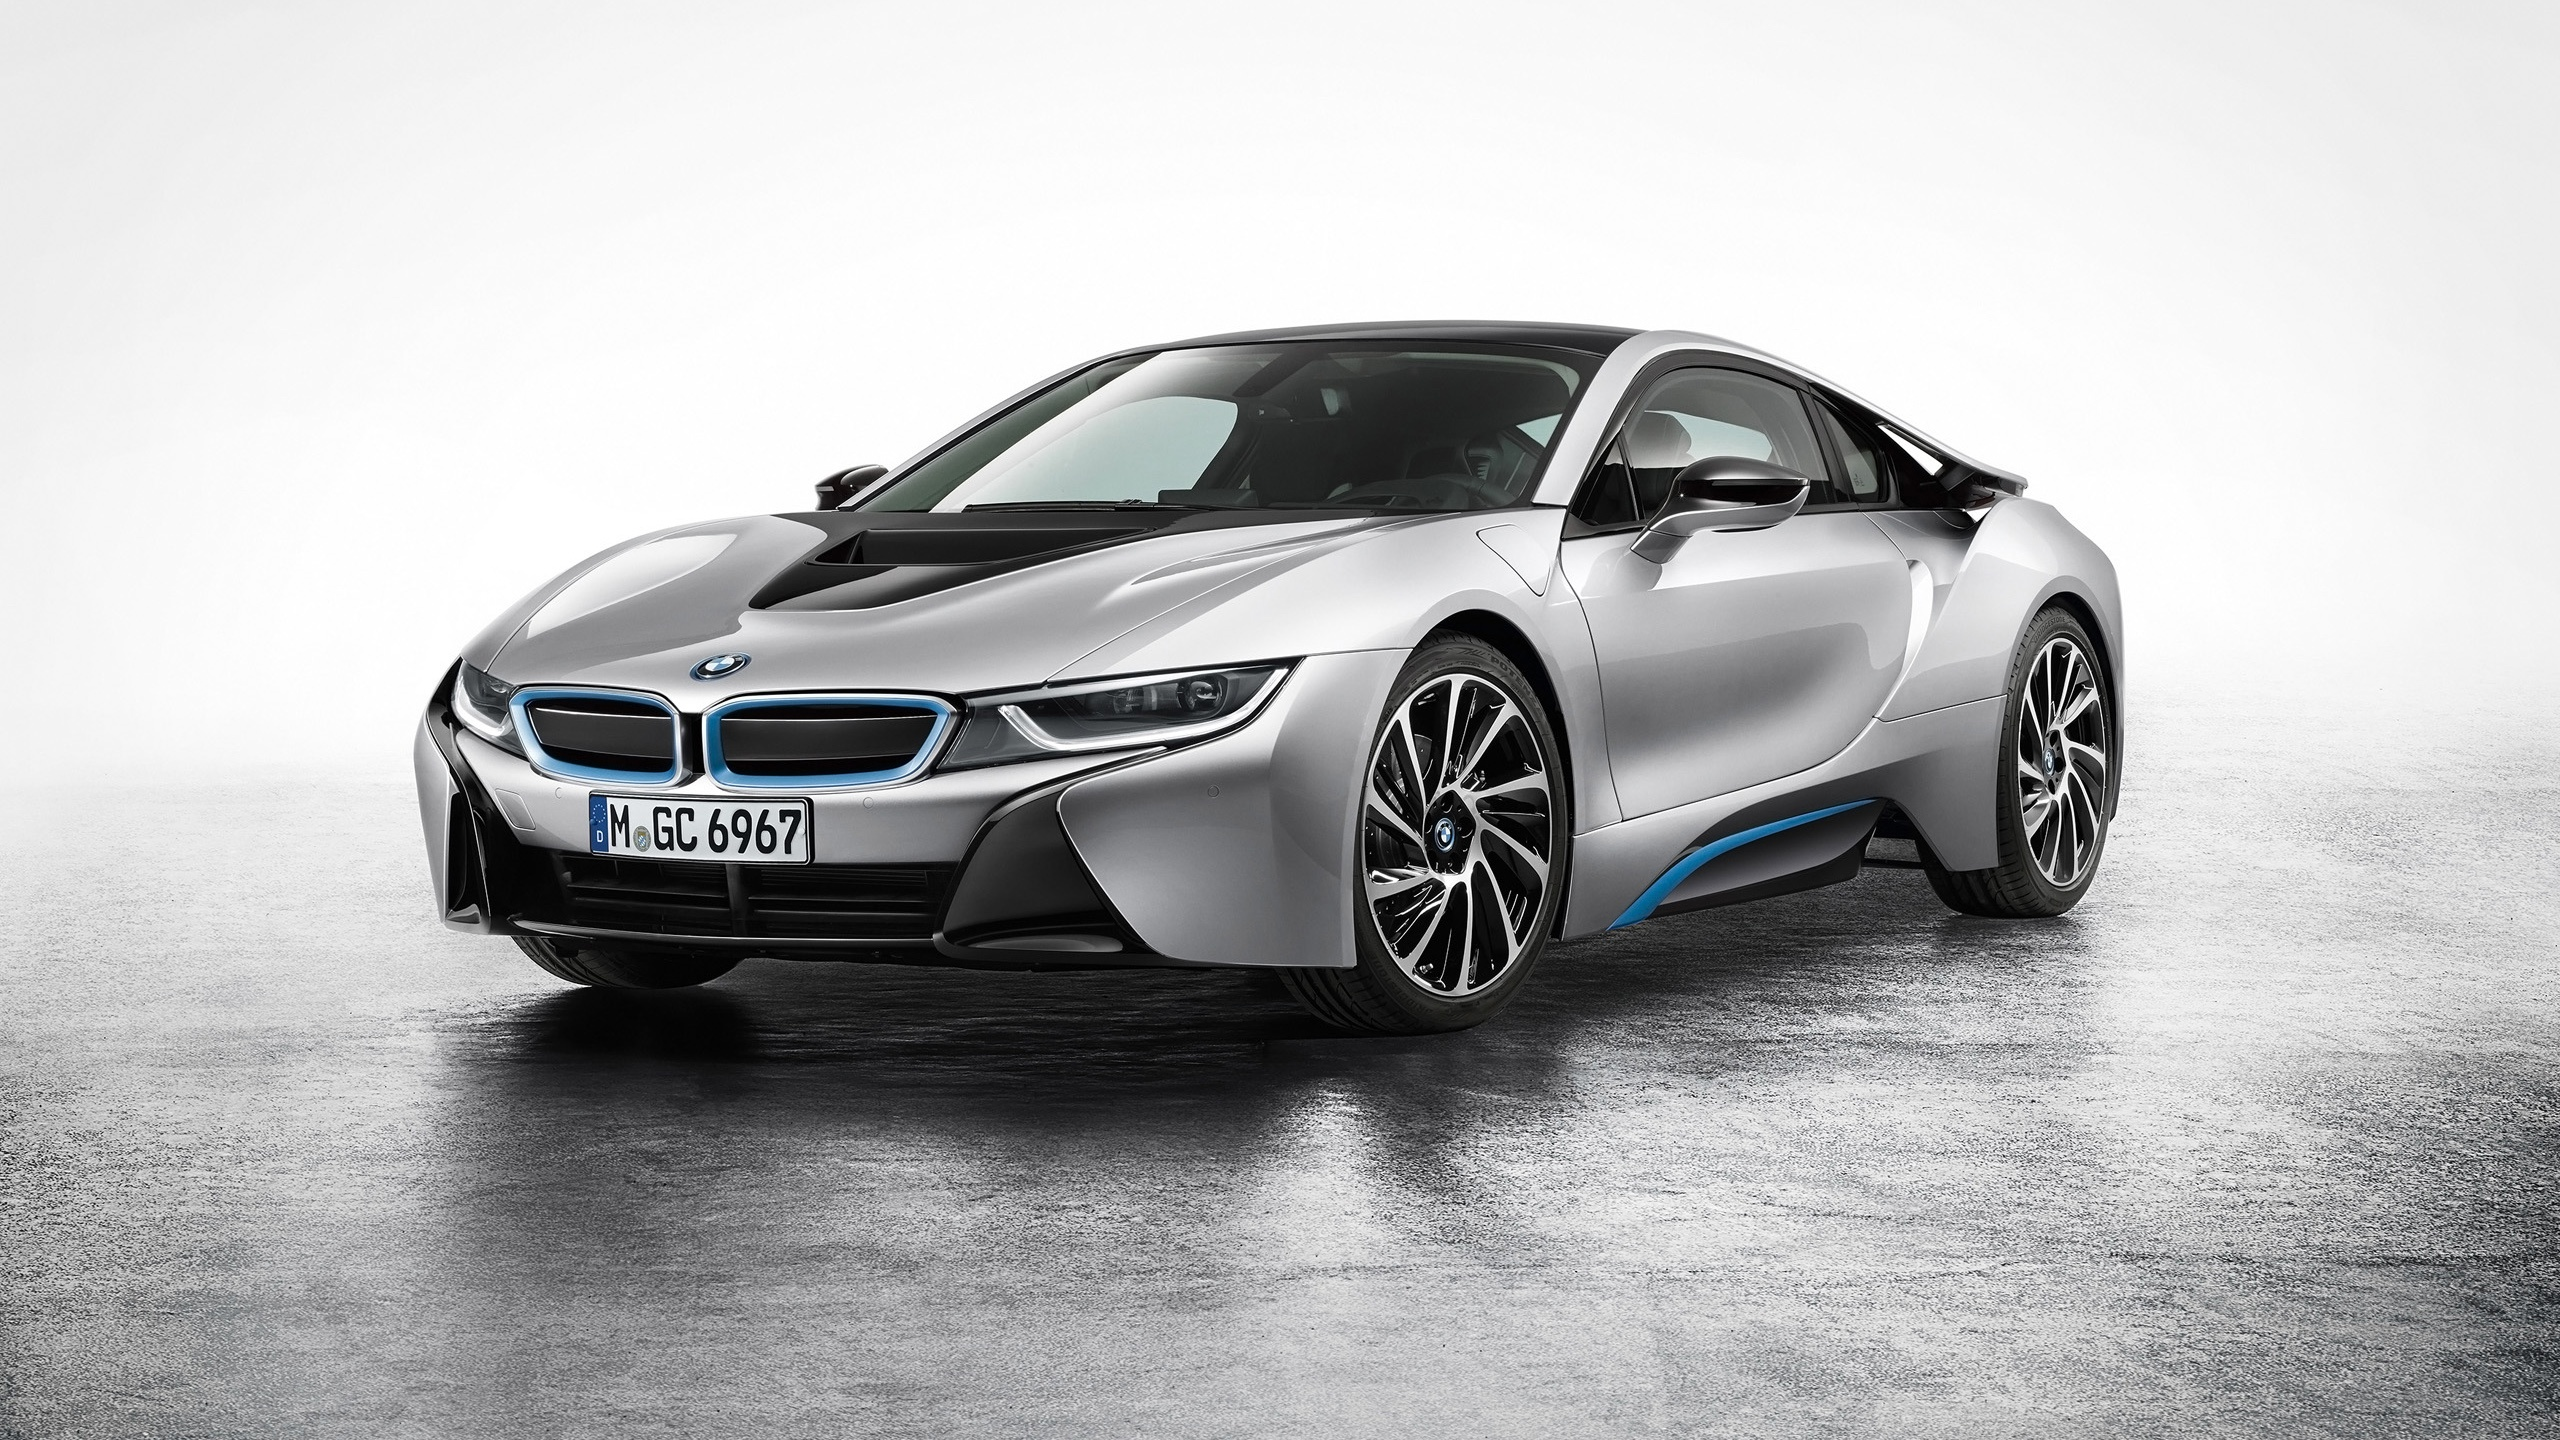 Bmw I8 2015 4150463 2560x1600 All For Desktop